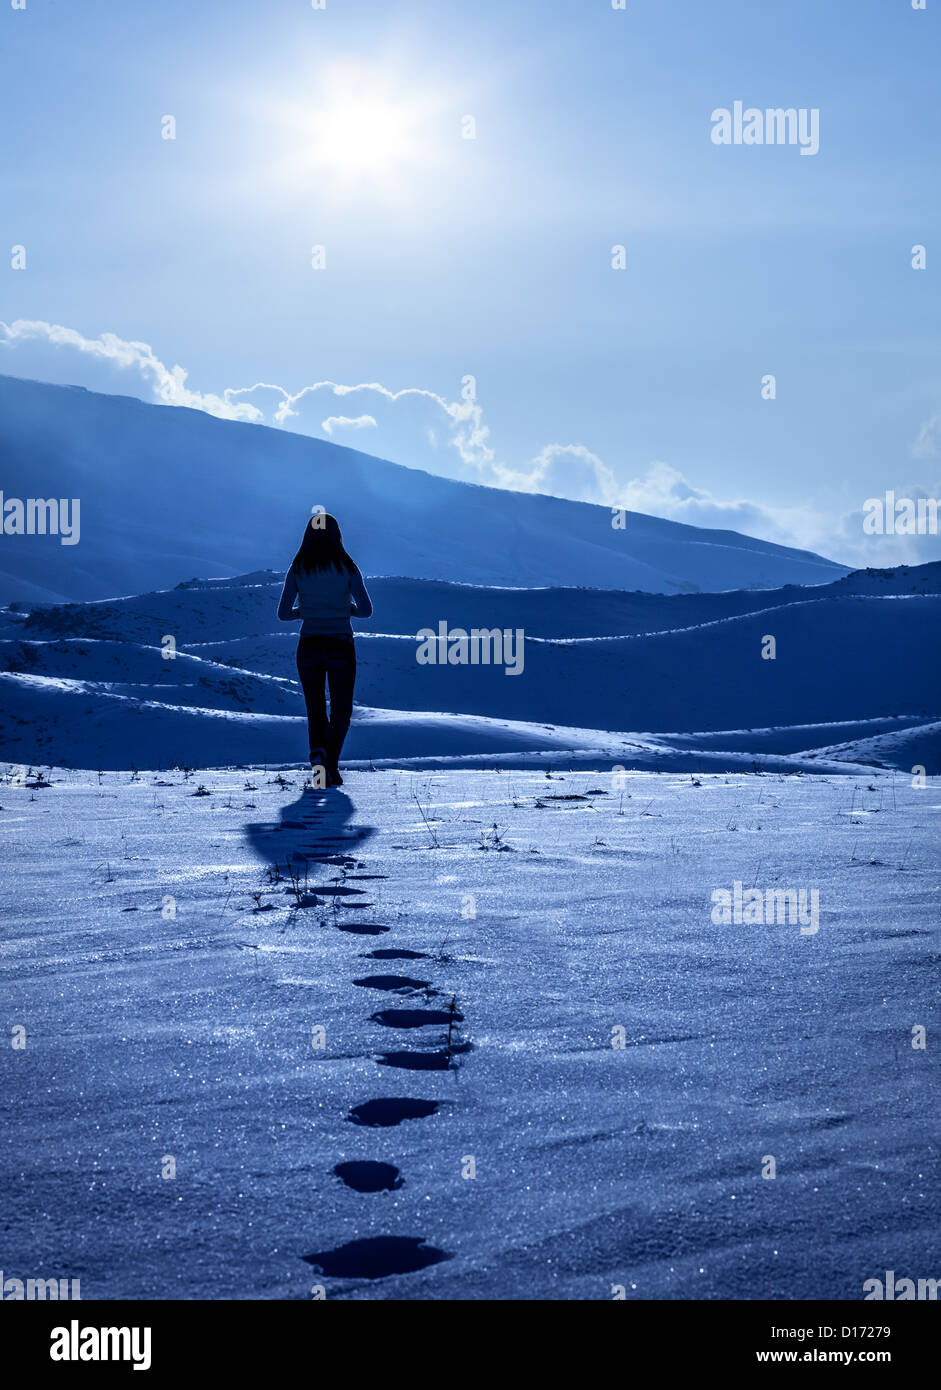 Image of lonely woman silhouette at winter mountains, footprints on the snow, enjoying wintertime nature view,one - Stock Image